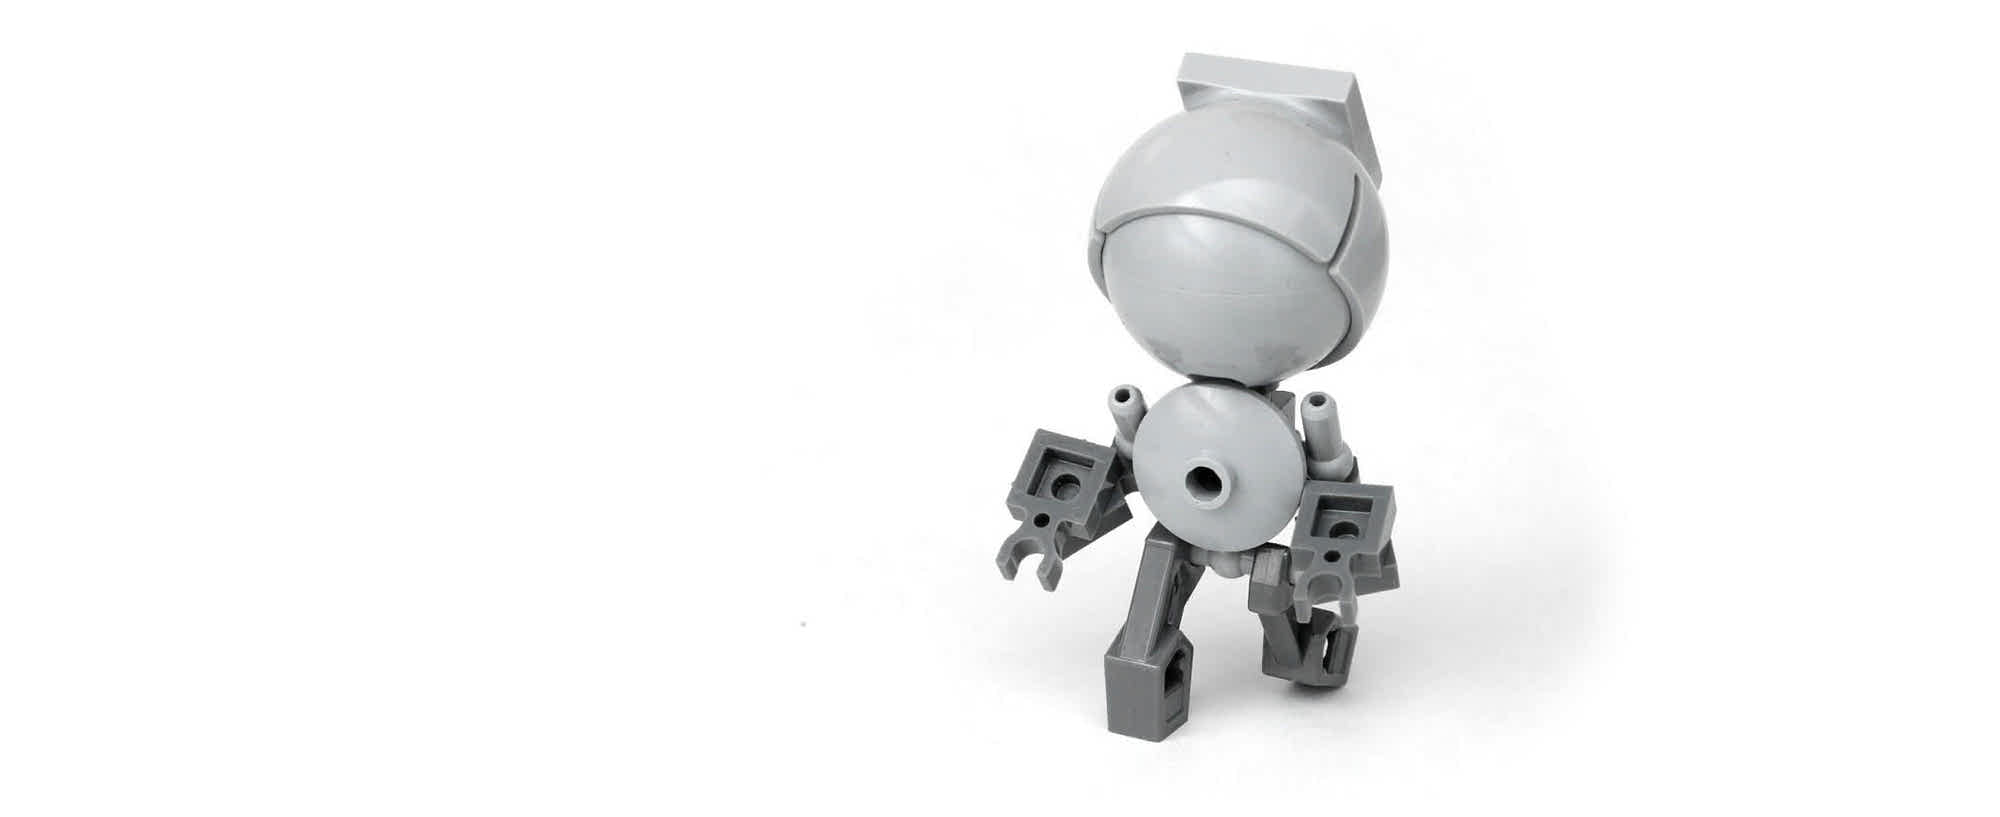 Marvin – Small robot made out of Lego bricks.